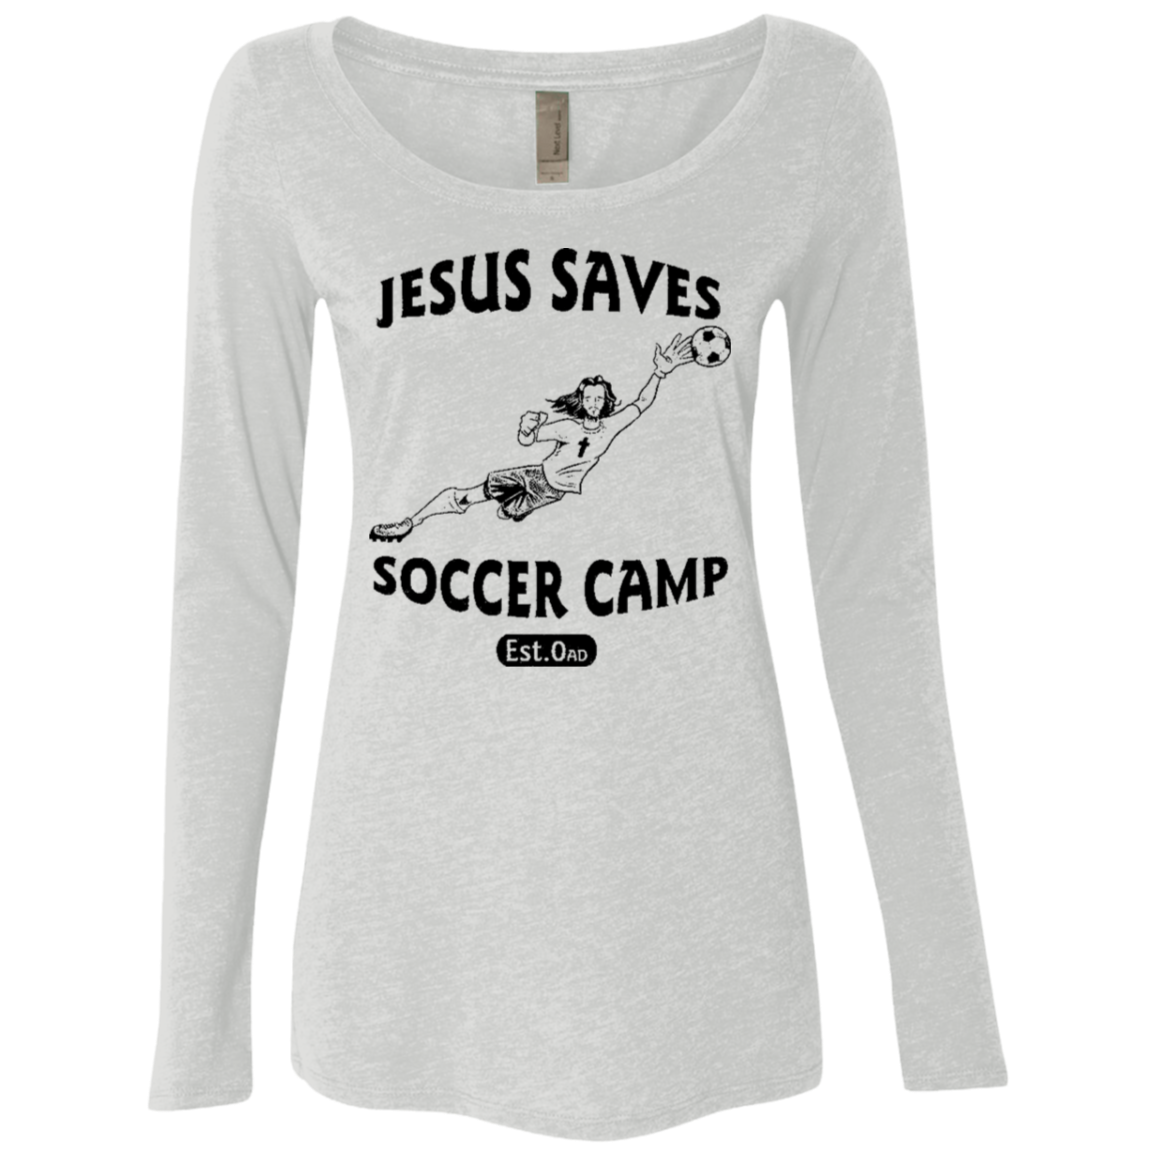 Jesus Saves Soccer Camp Women's Long Sleeve Tee